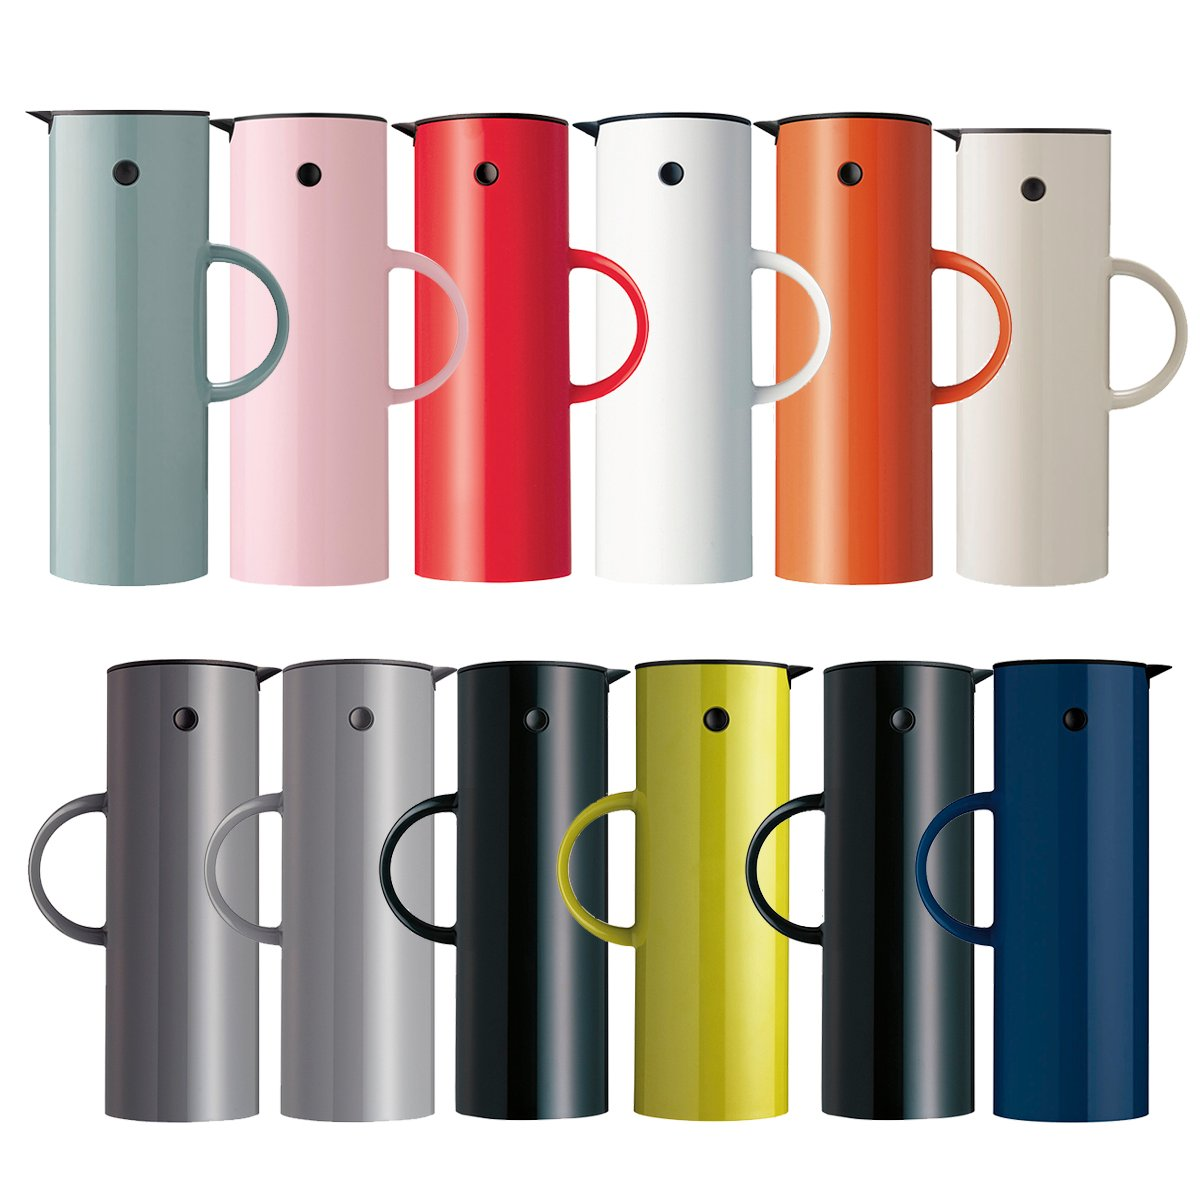 stelton em77 vacuum jug 1l all colours panik design. Black Bedroom Furniture Sets. Home Design Ideas